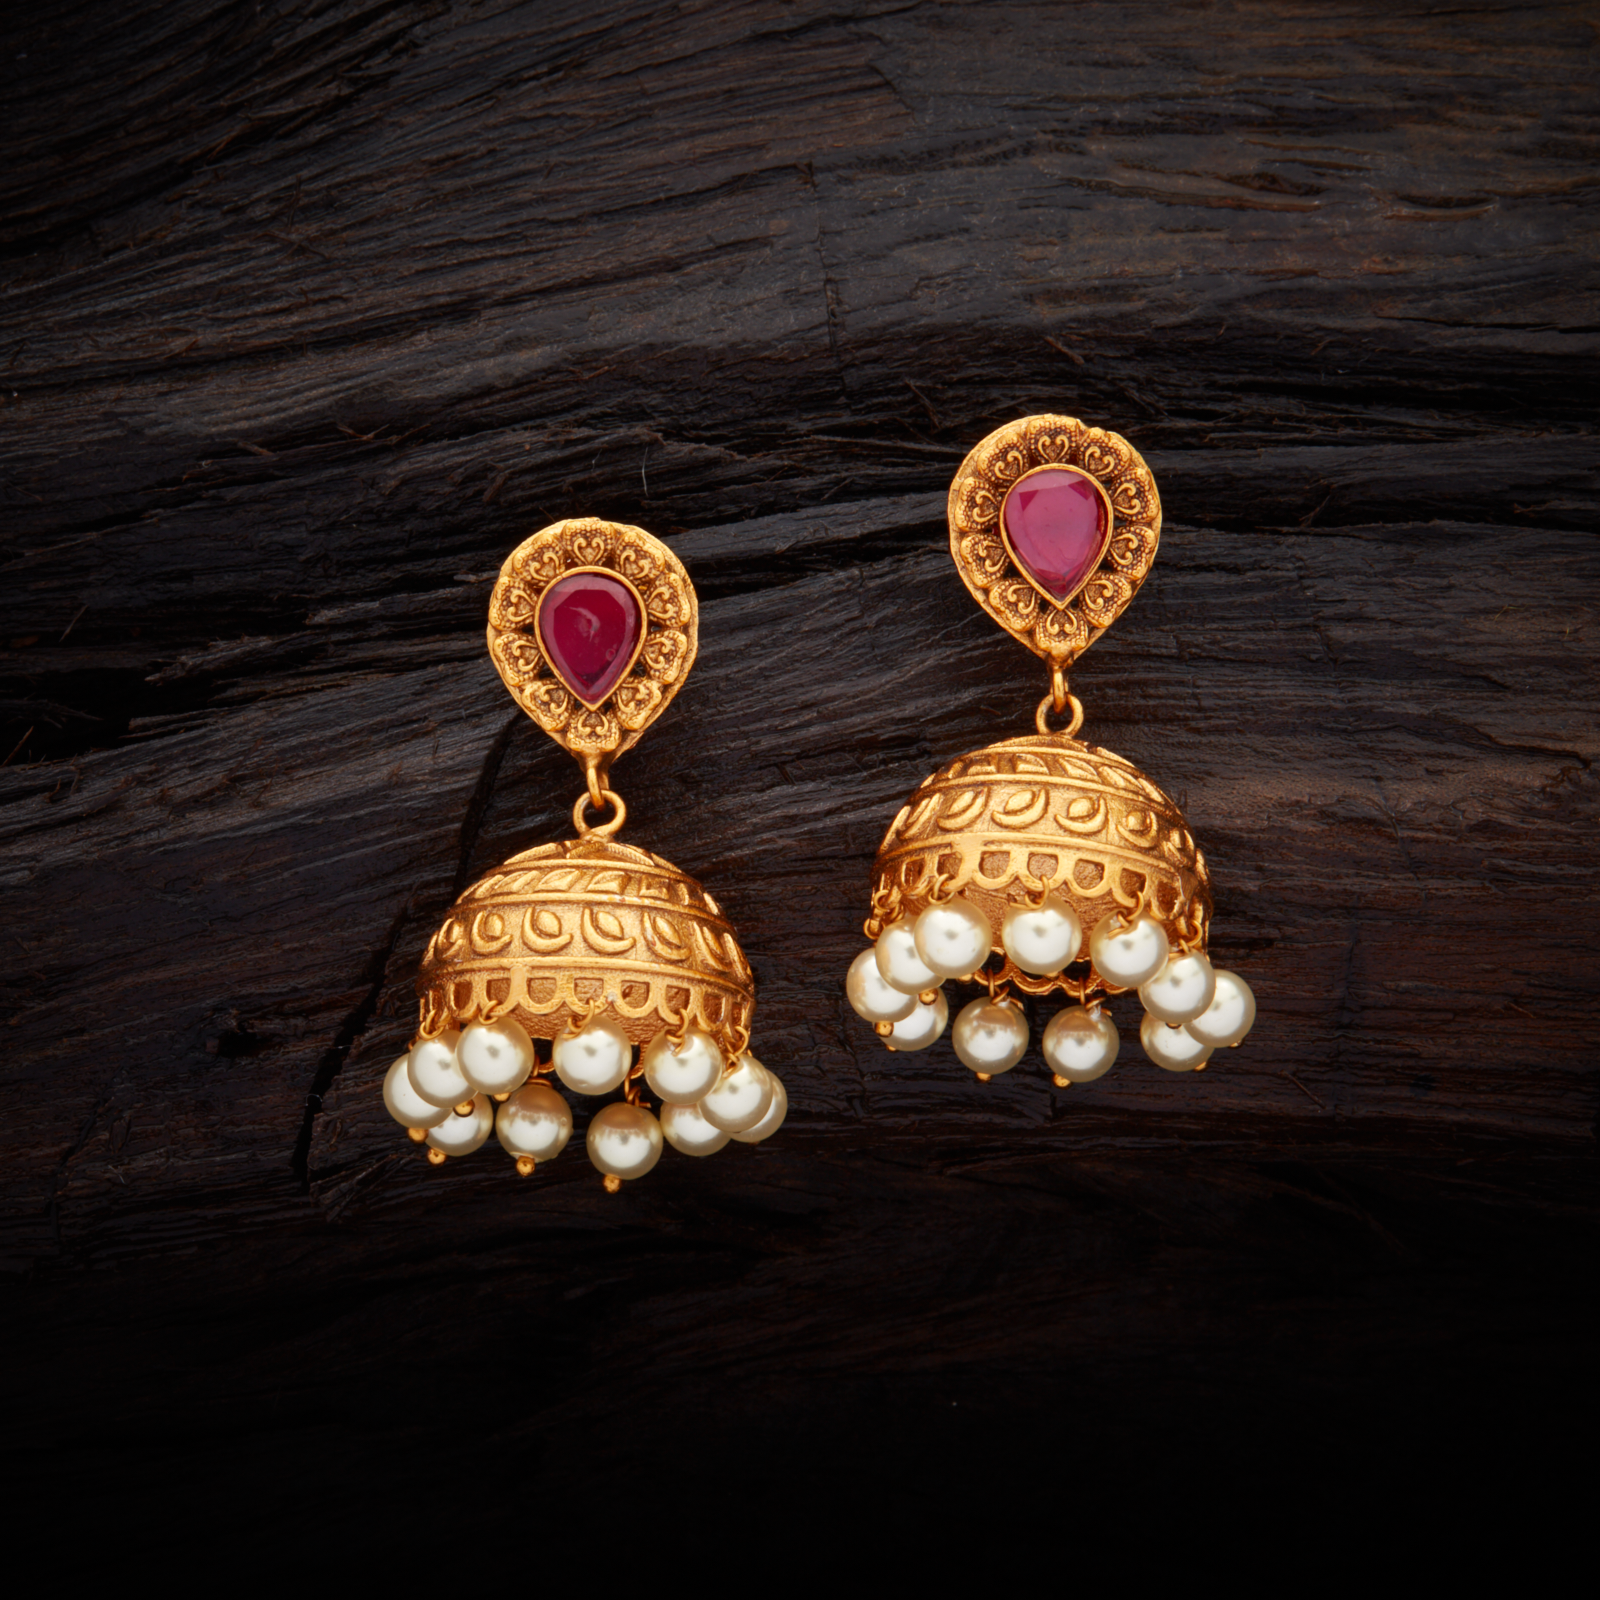 aae6d0713 Vintage Design Antique Jhumka earrings studded with Ruby synthetic stones,  with gold Polish.